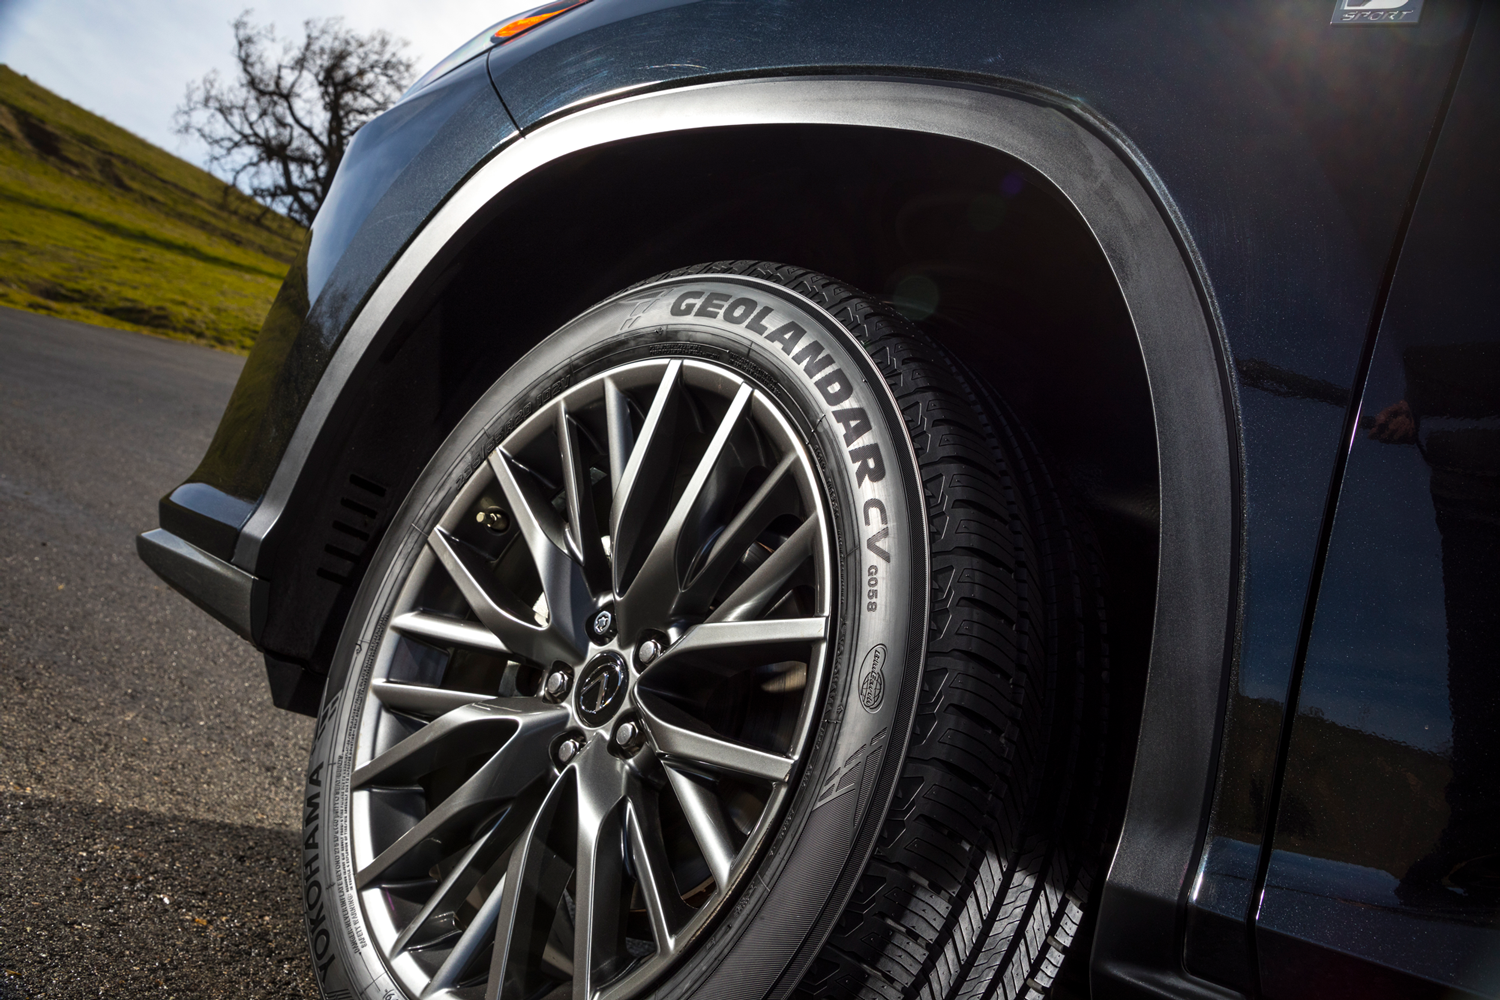 Yokohama Tire's Brand New GEOLANDAR CV G058 Offers Sure-Footed All-Season Traction For Crossovers, Small SUVs And Minivans With 60-Day Risk-Free Trial; Now Eligible For $70 Spring 2021 Rebate